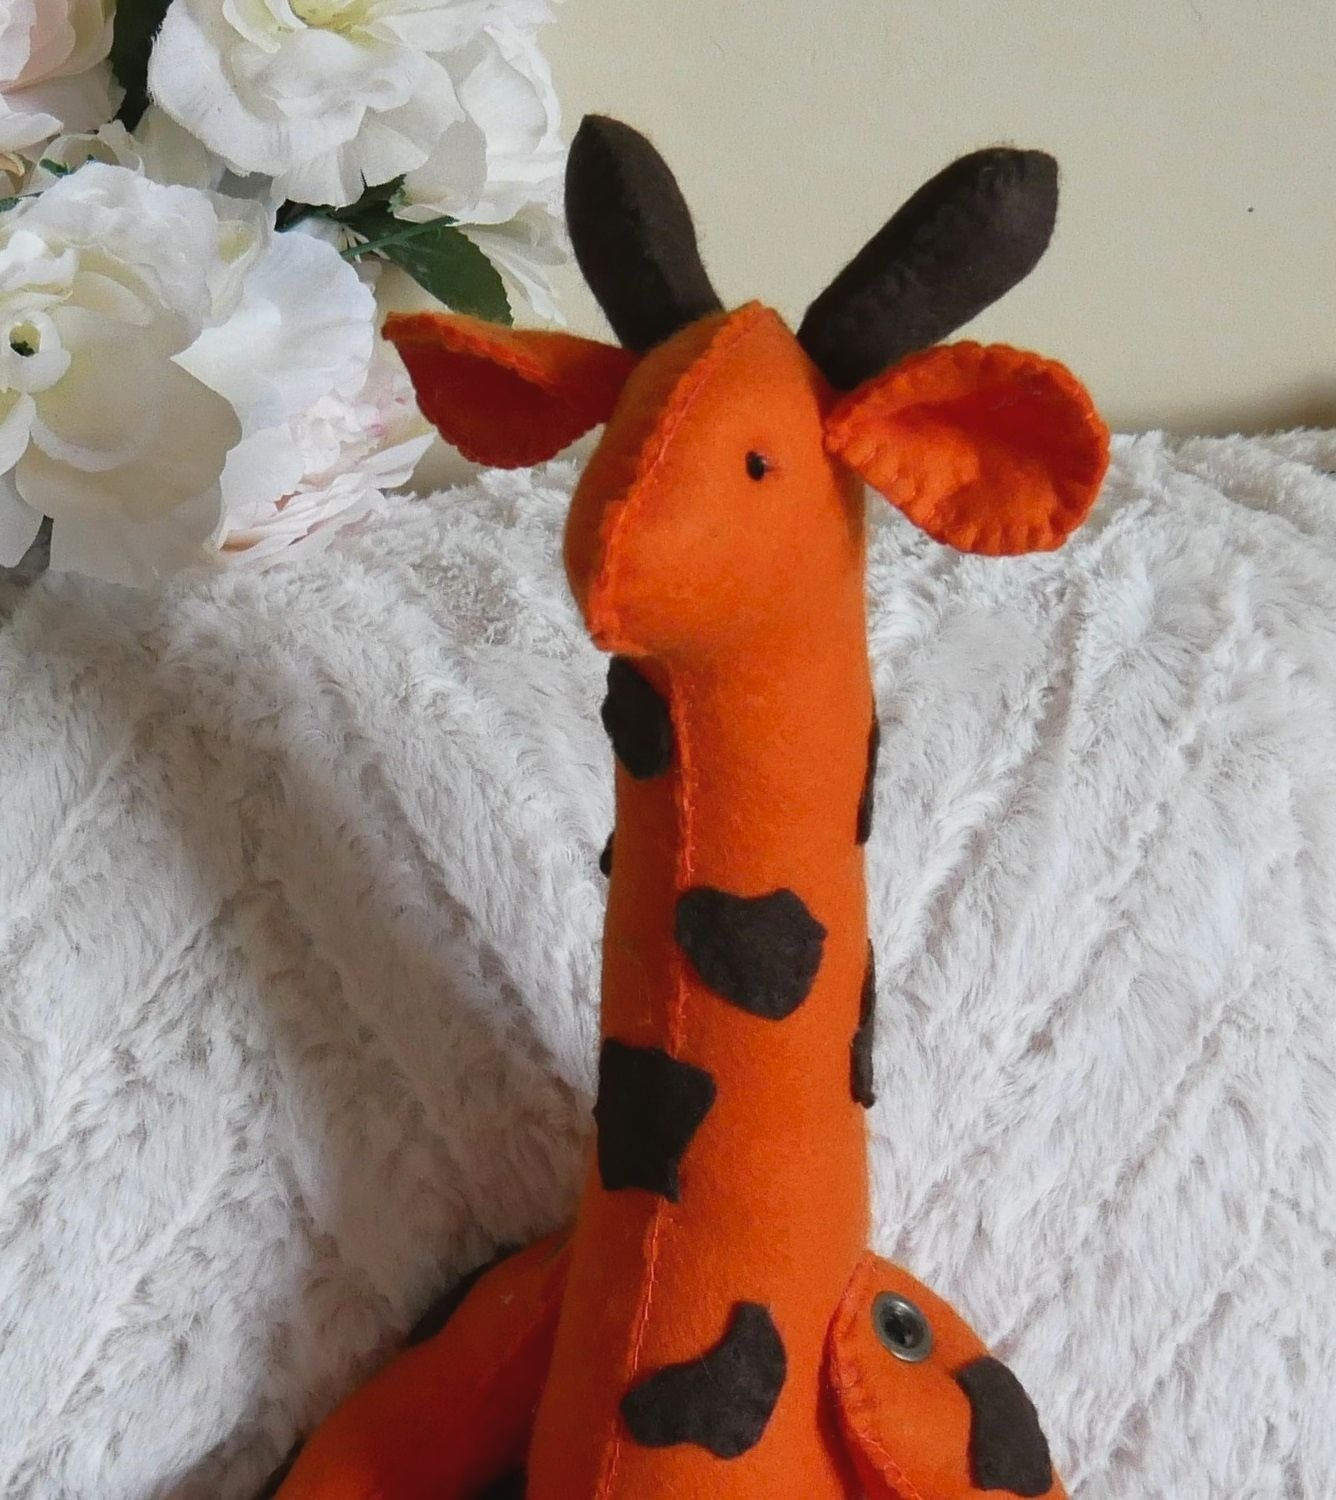 Felt-Toy-Giraffe-Nchanted-Gifts